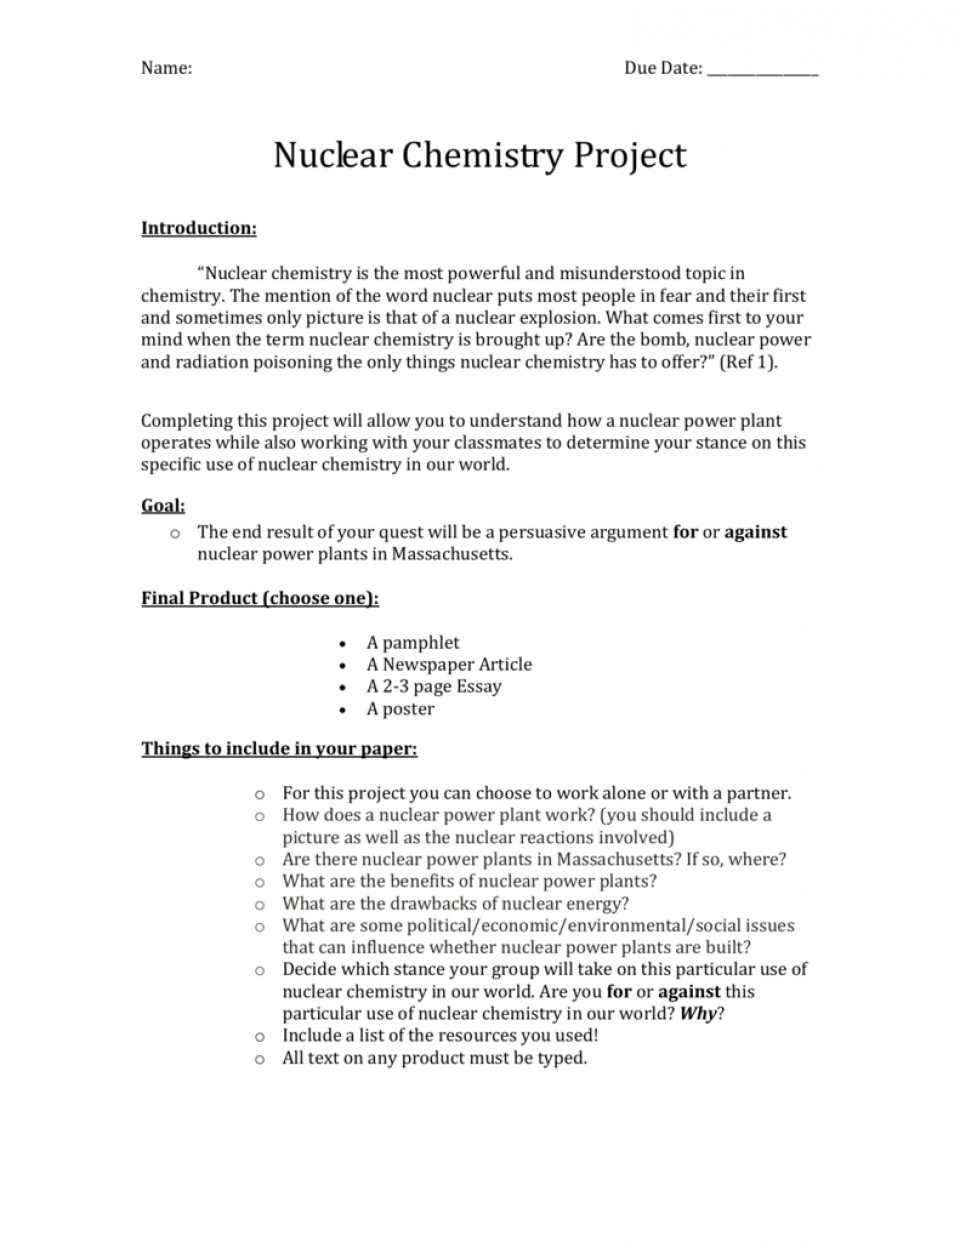 002 Nuclear Chemistry Essay 007069203 1 Awesome Advantages And Disadvantages 960